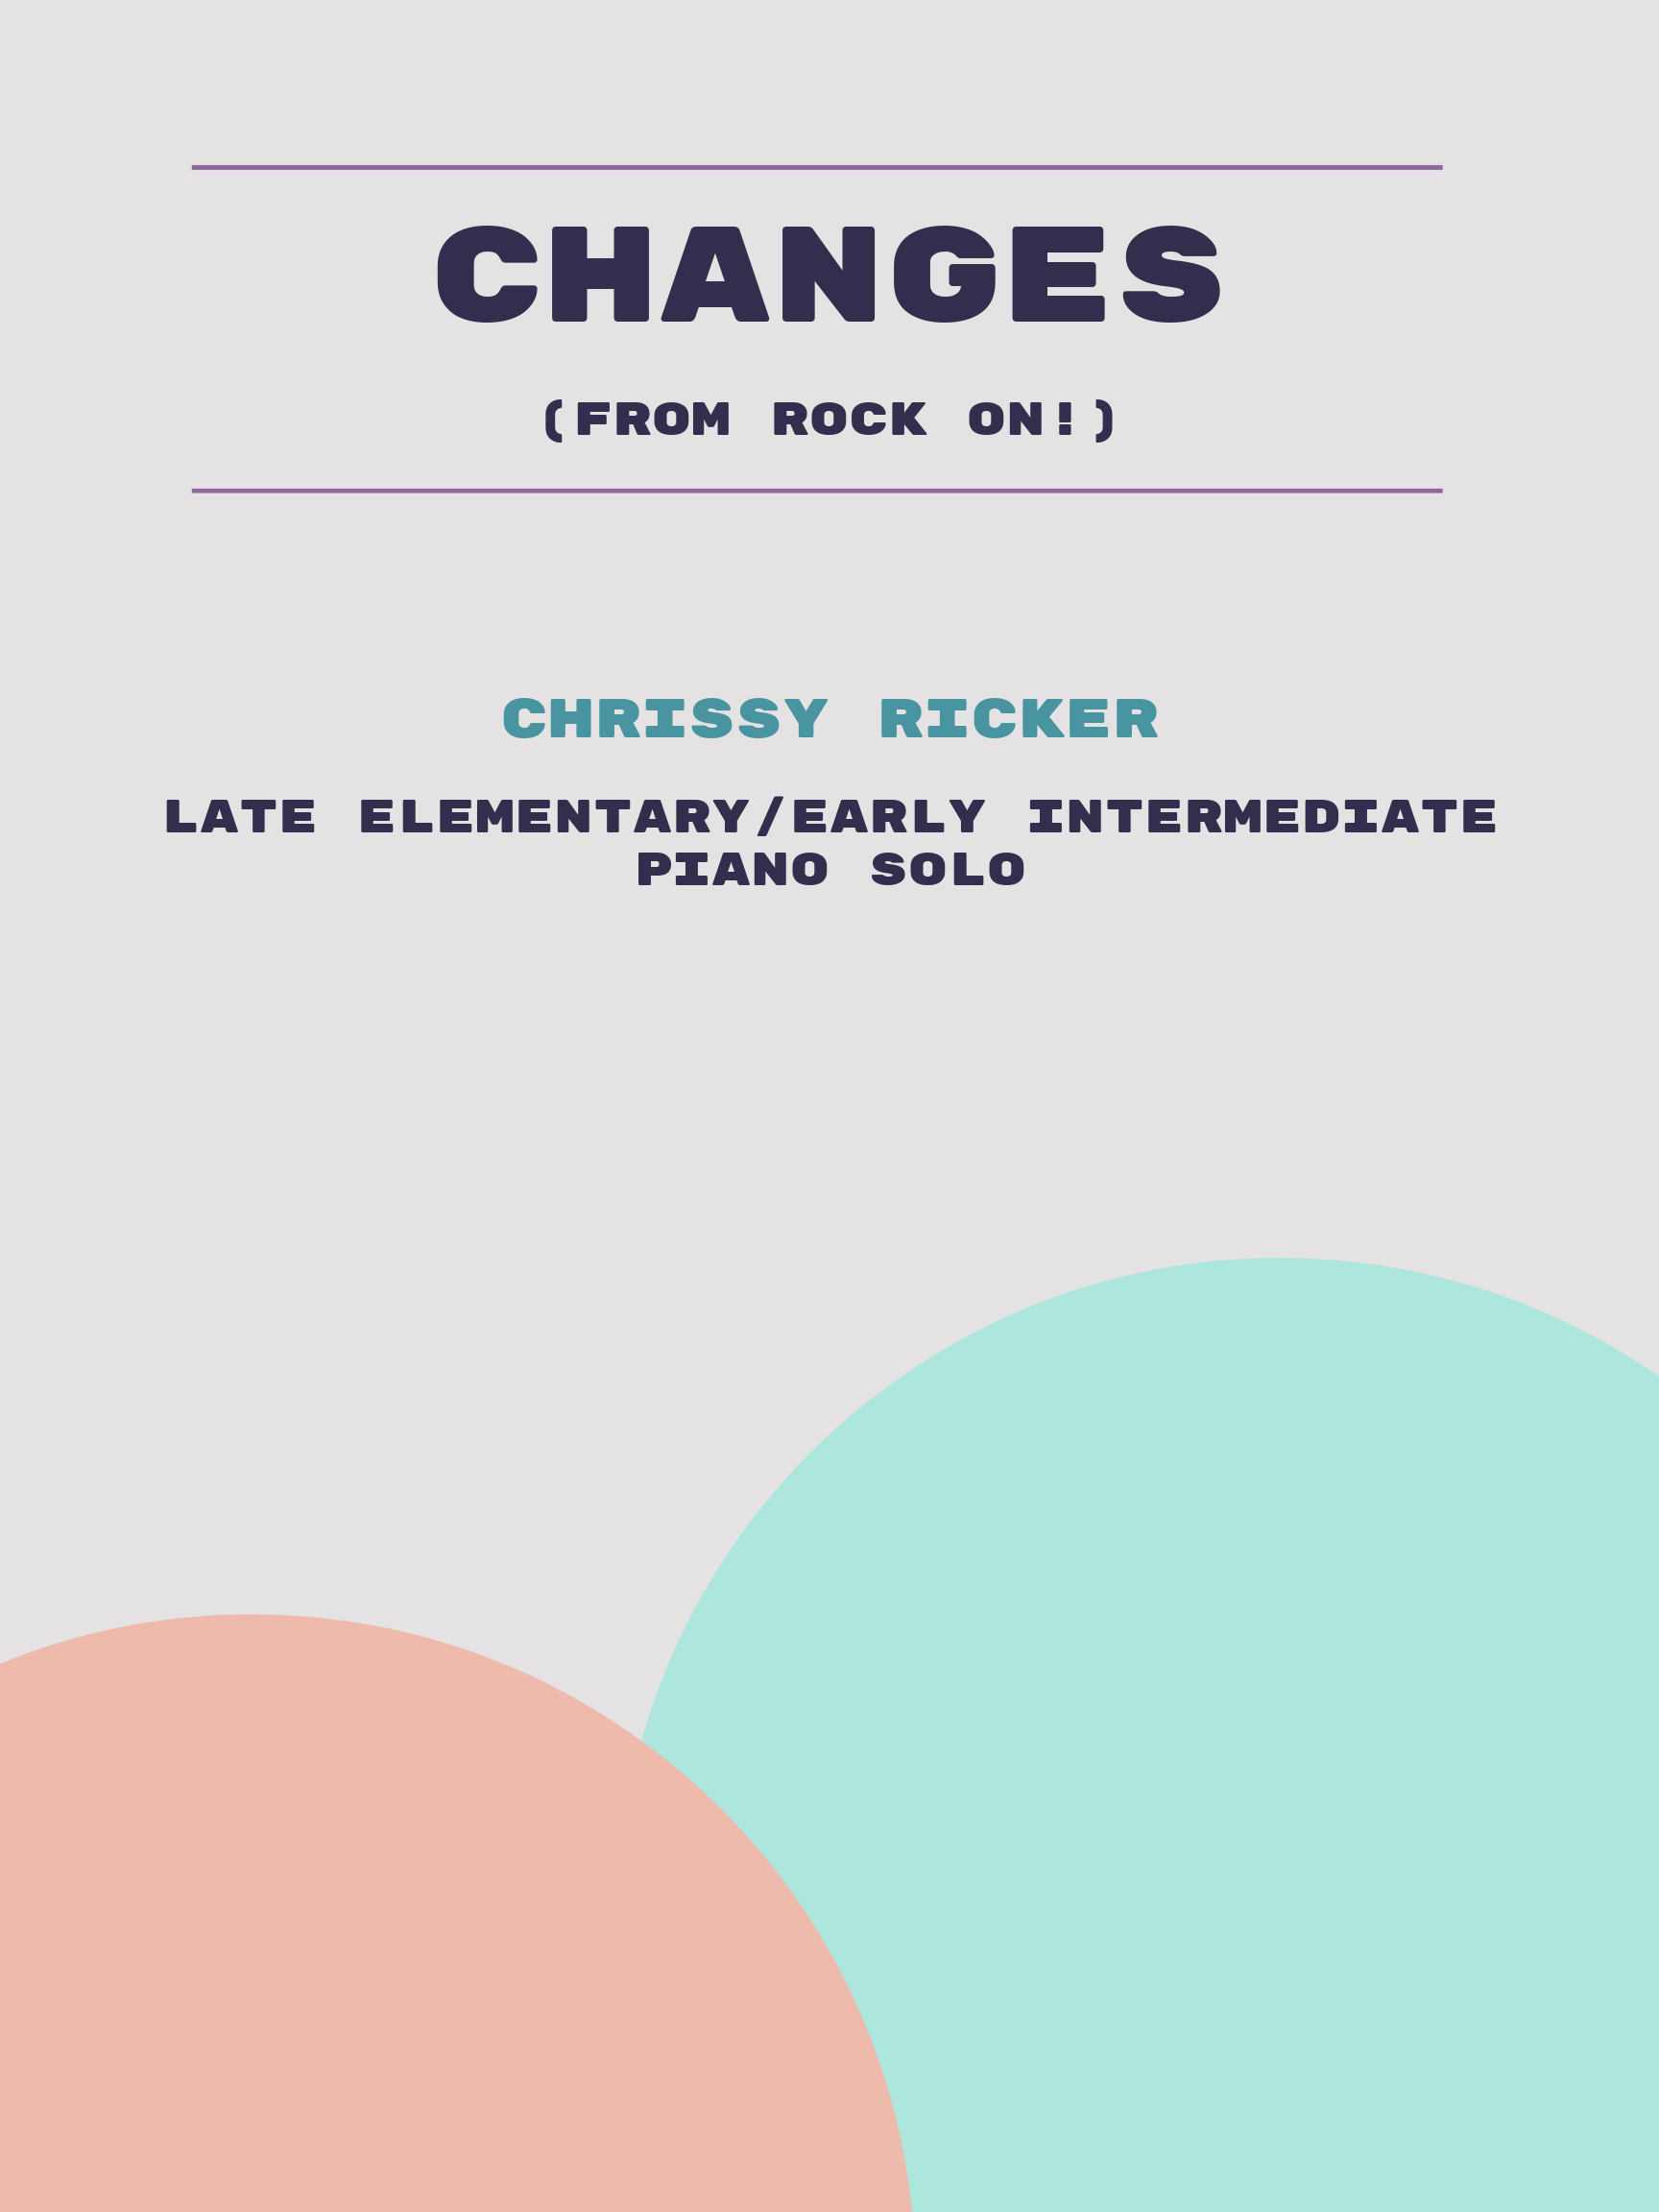 Changes by Chrissy Ricker